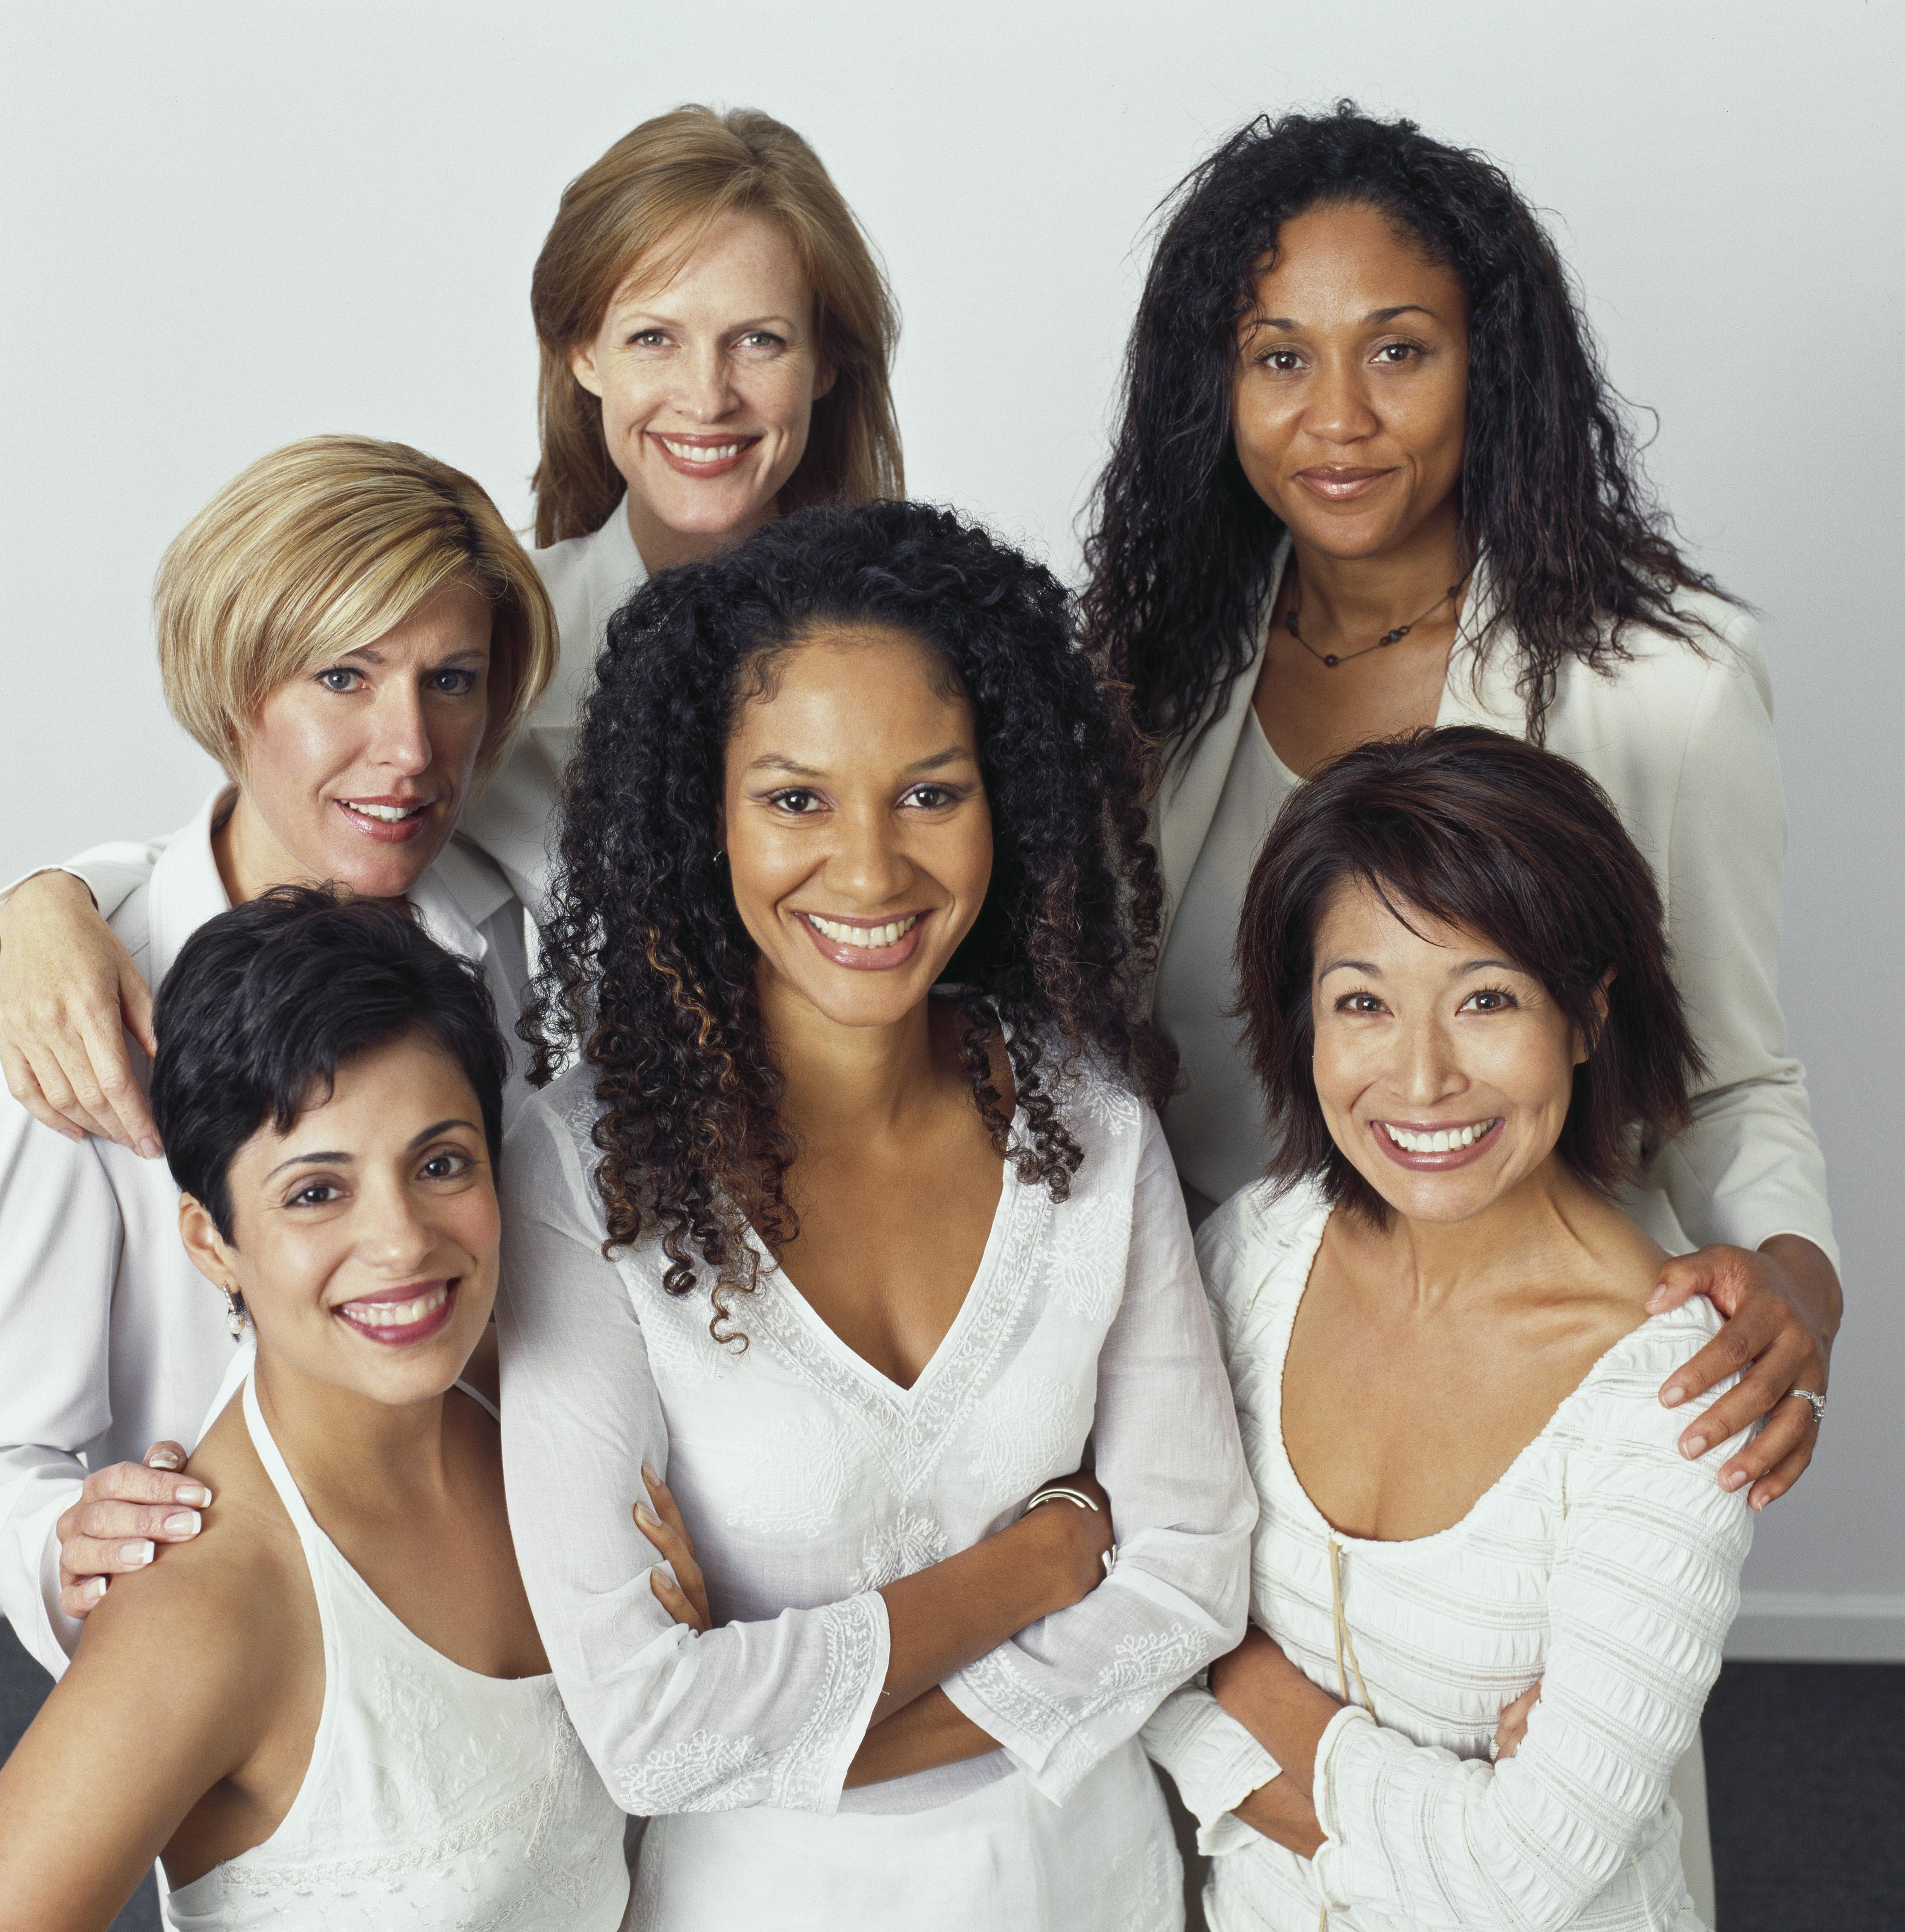 Smiling businesswomen dressed in white